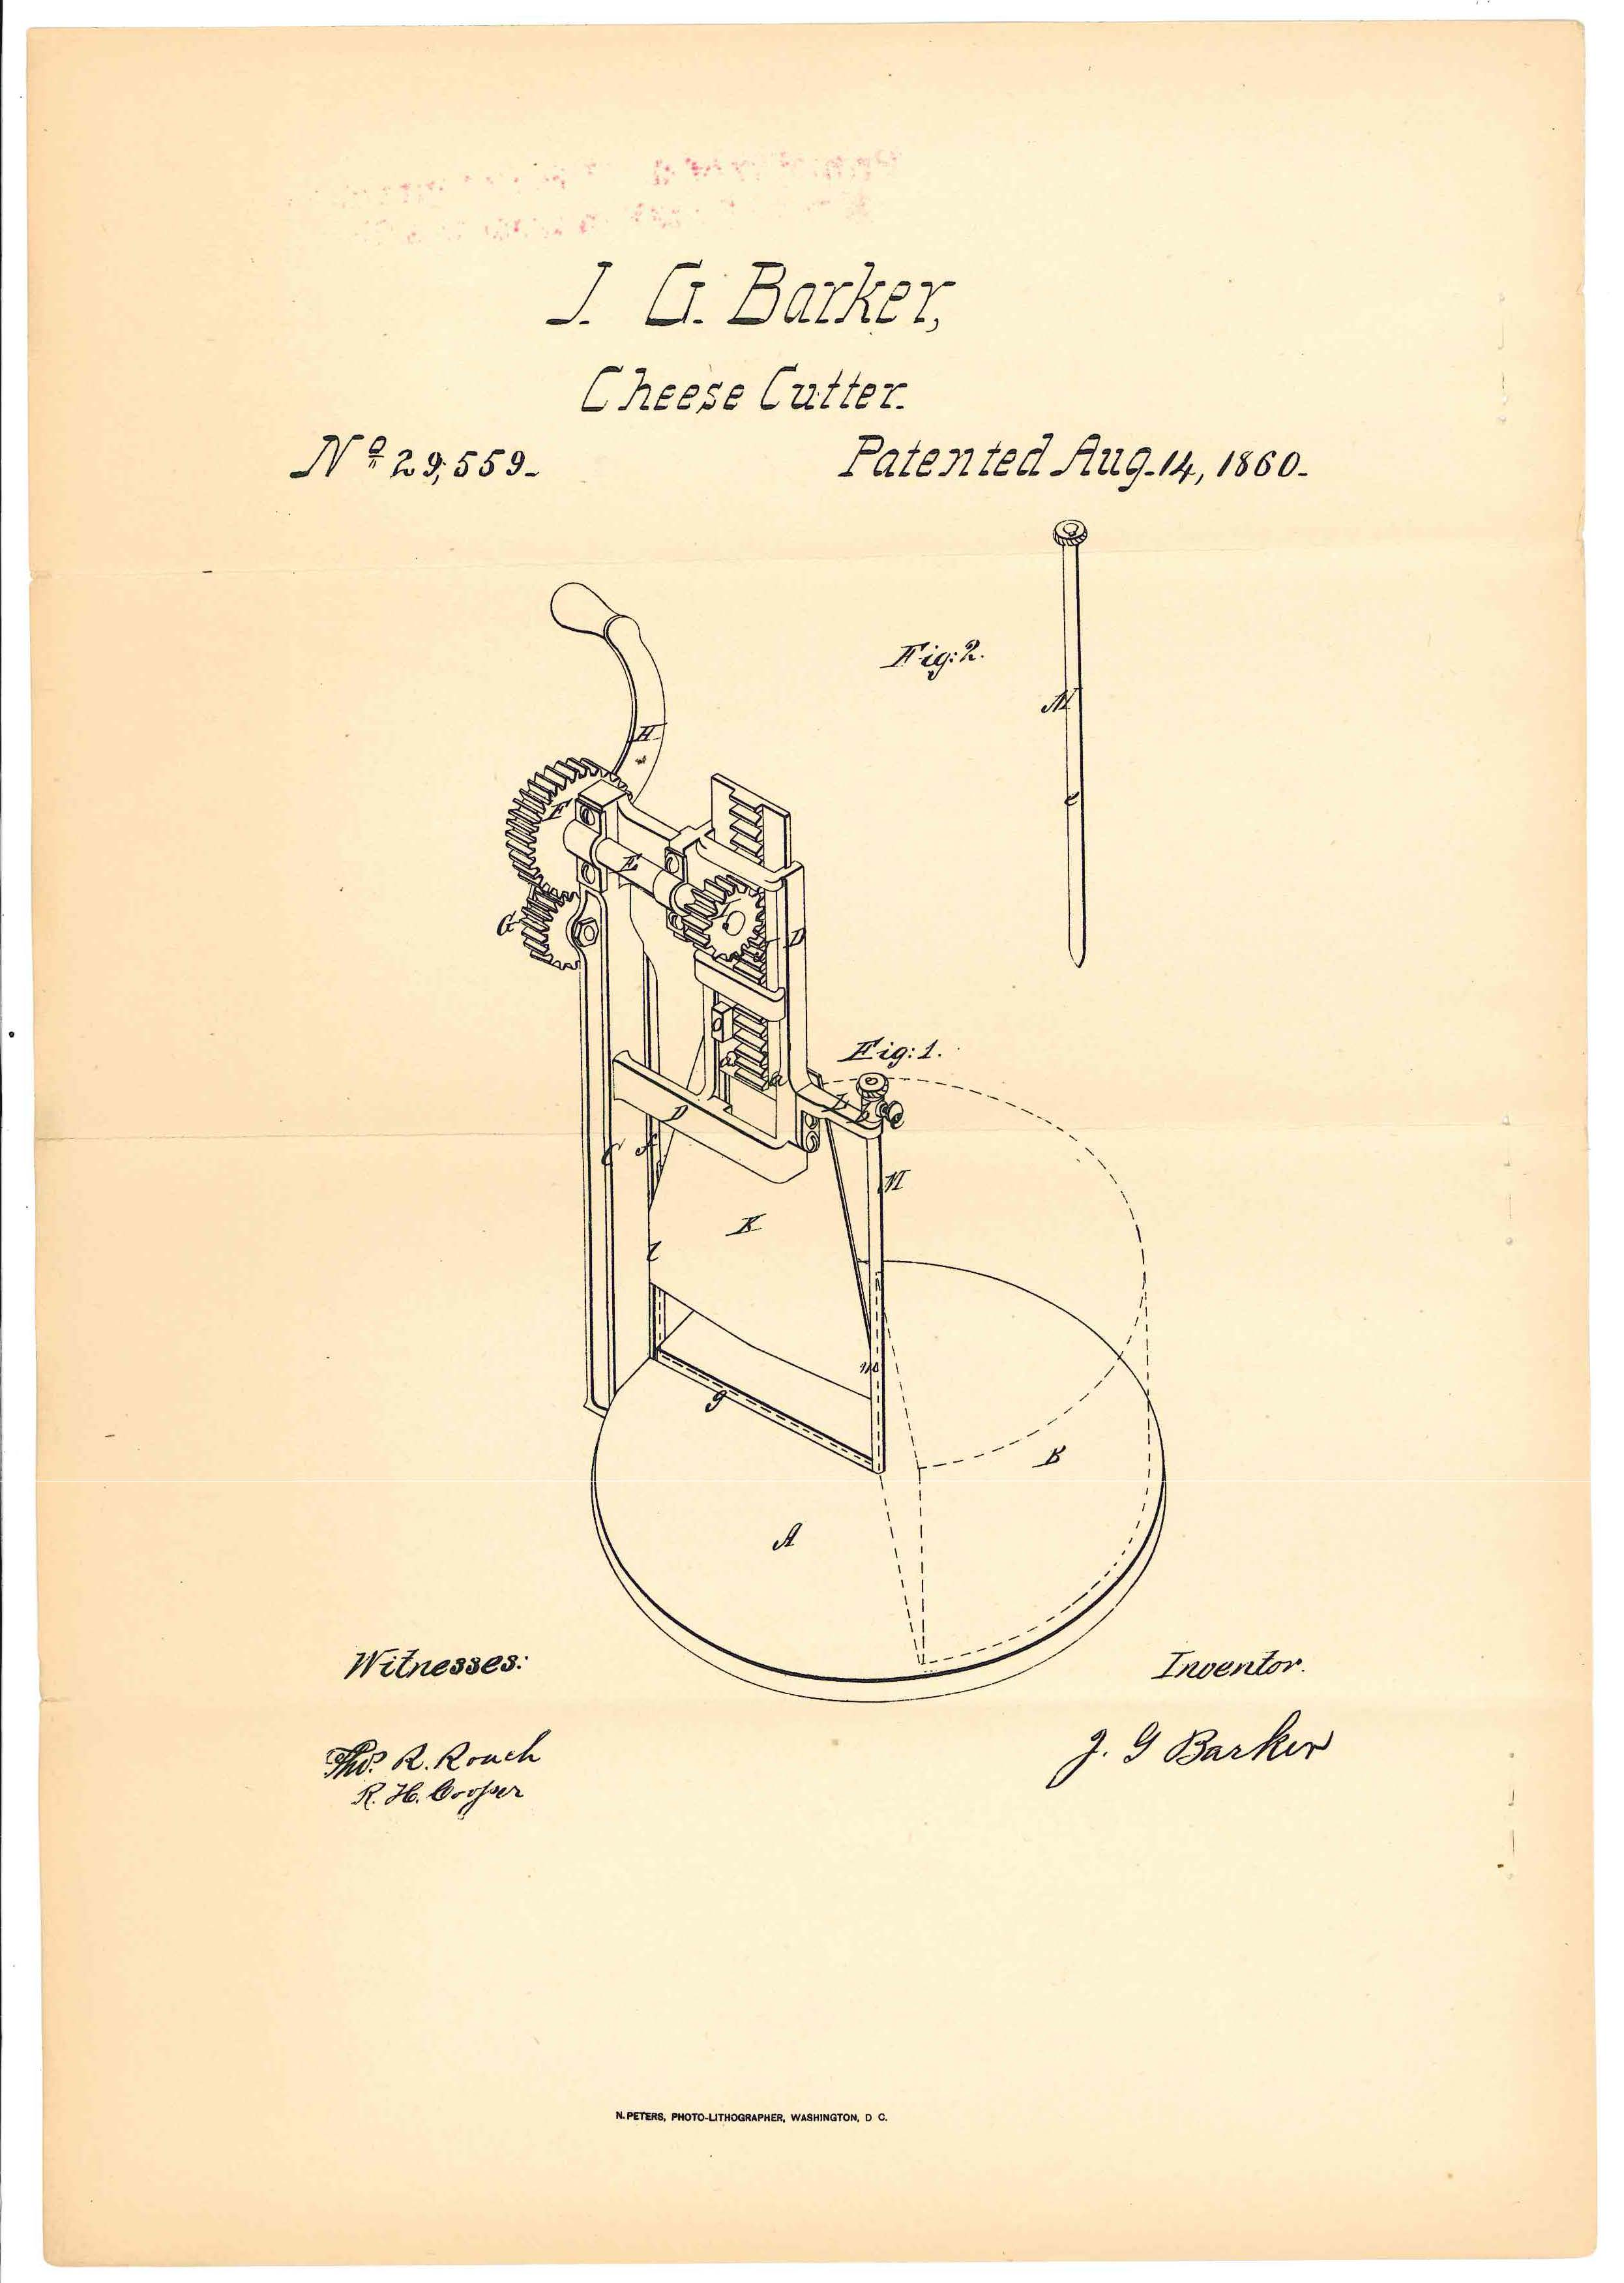 Patent for a cheese slicer, granted to J. G. Barker in 1860 (National Archives at Kansas City)